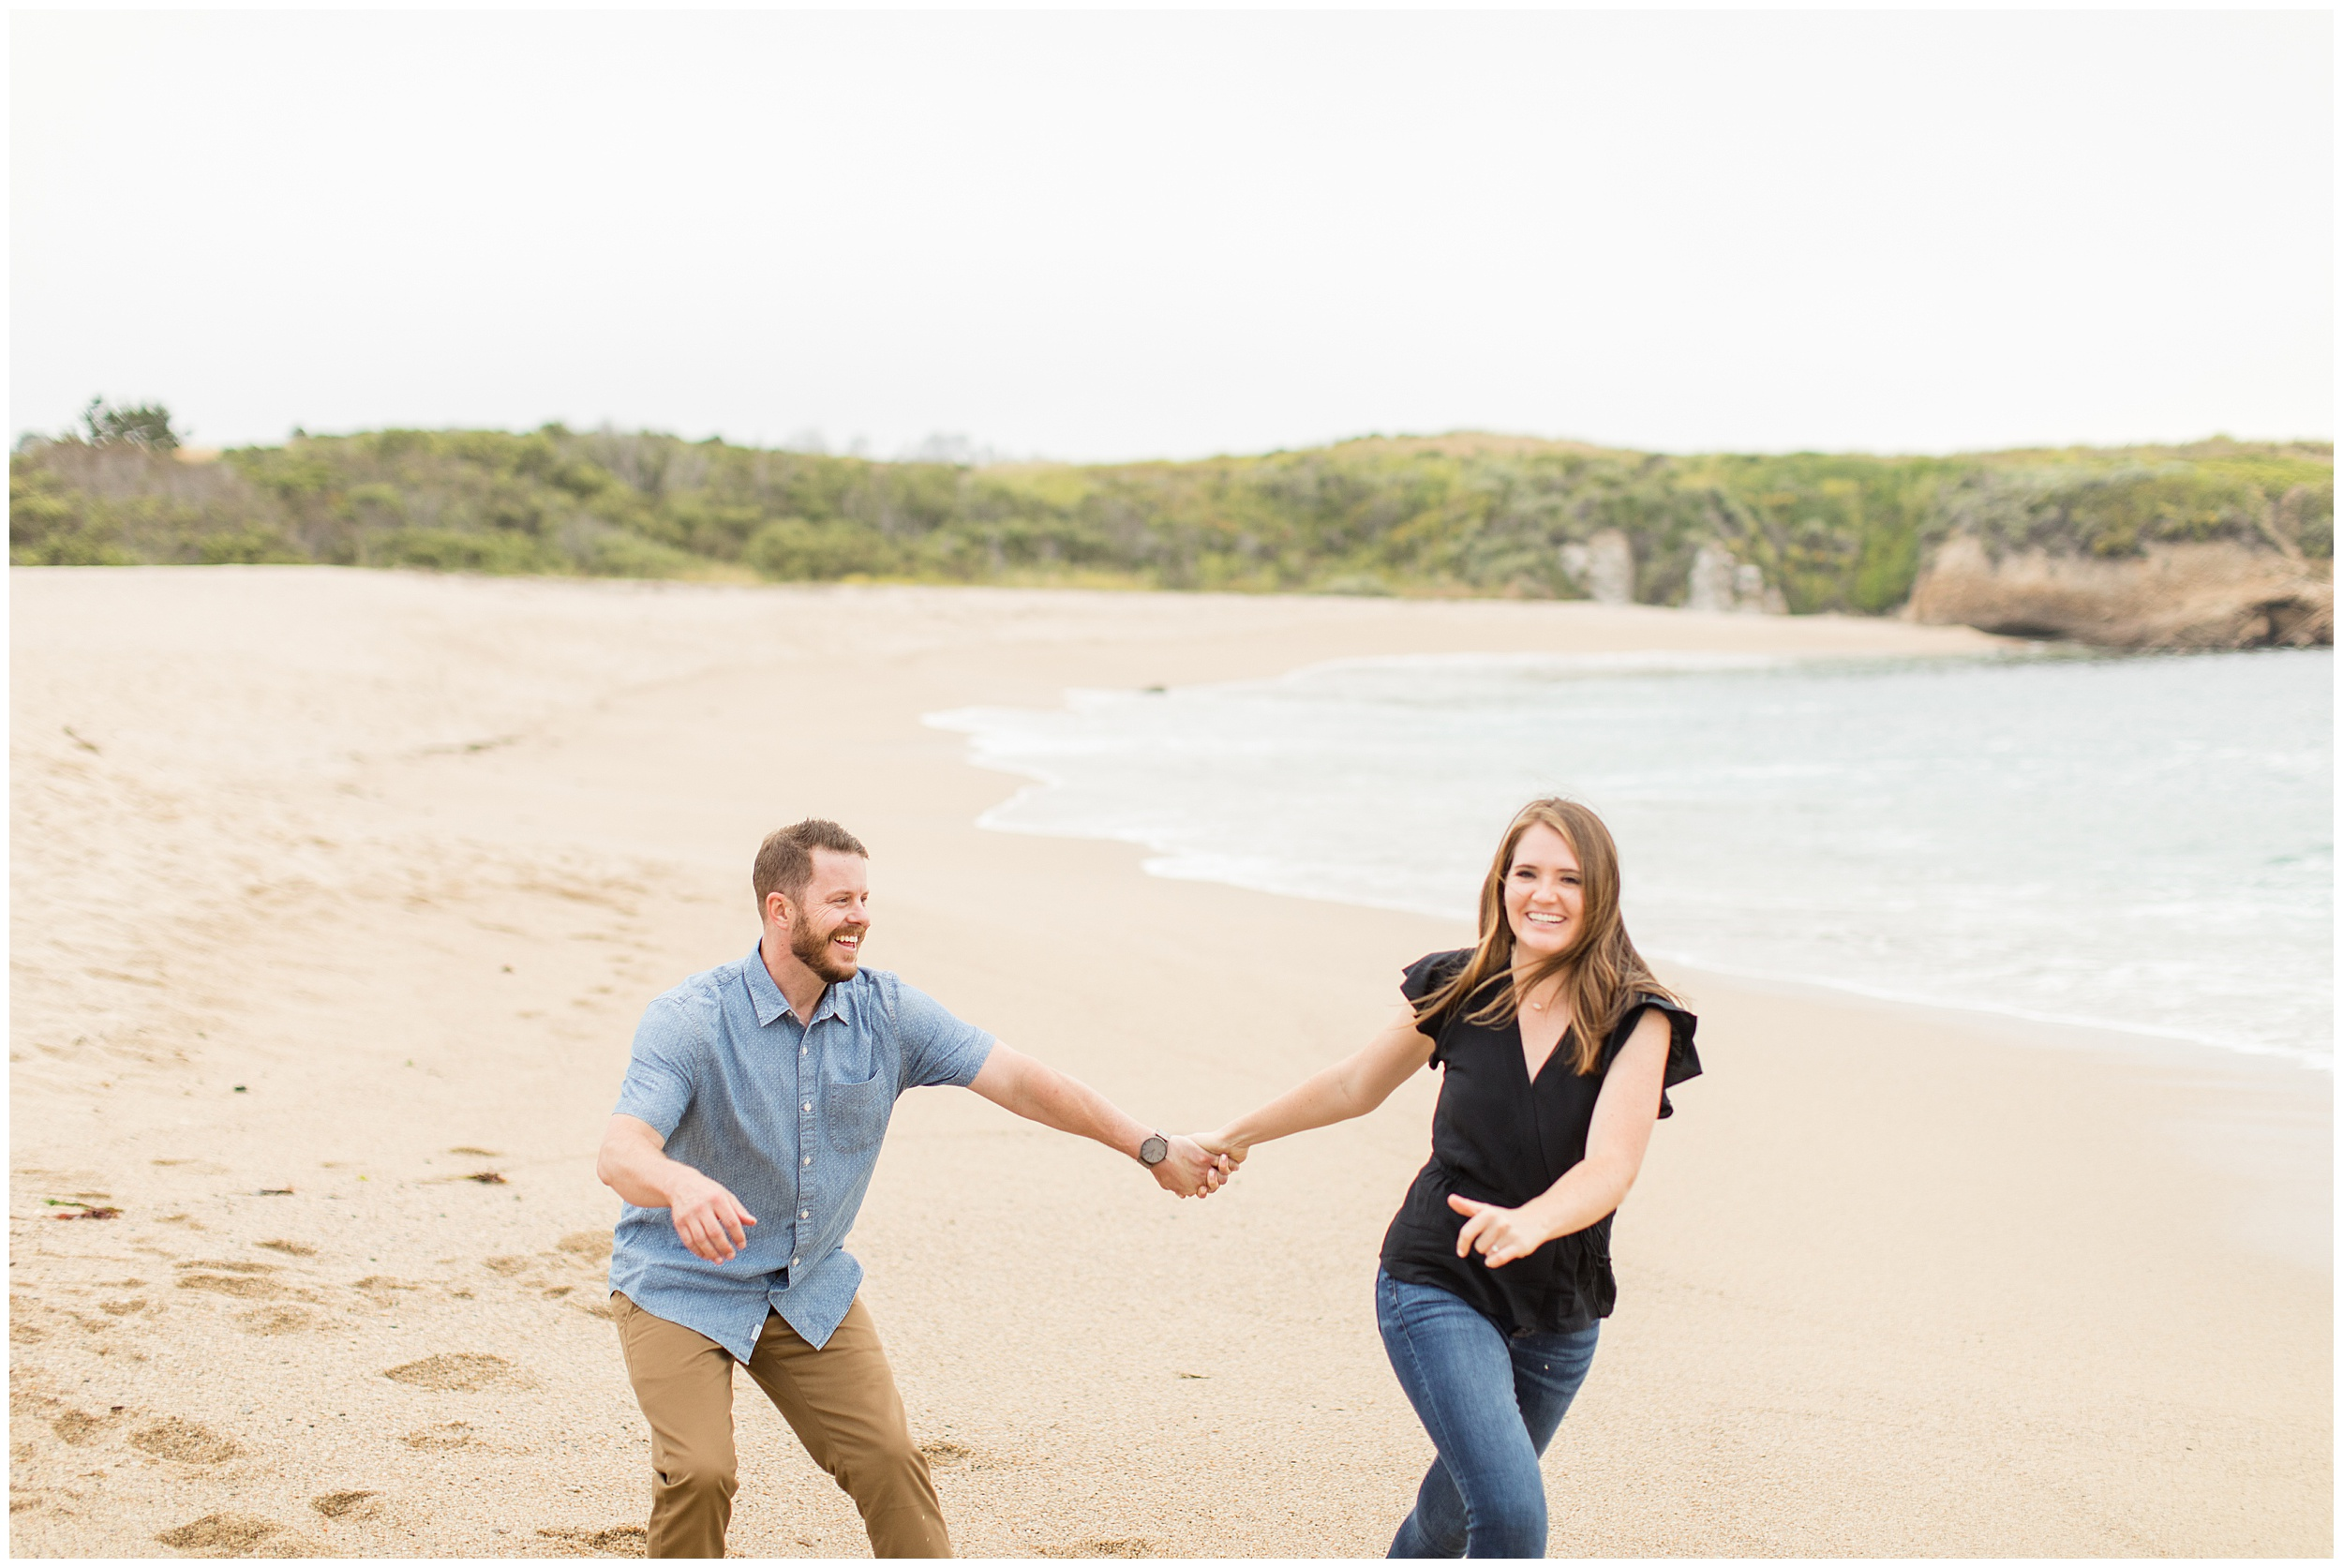 2019 carmel by the sea surprise proposal engagement session wedding photographer angela sue photography_0019.jpg